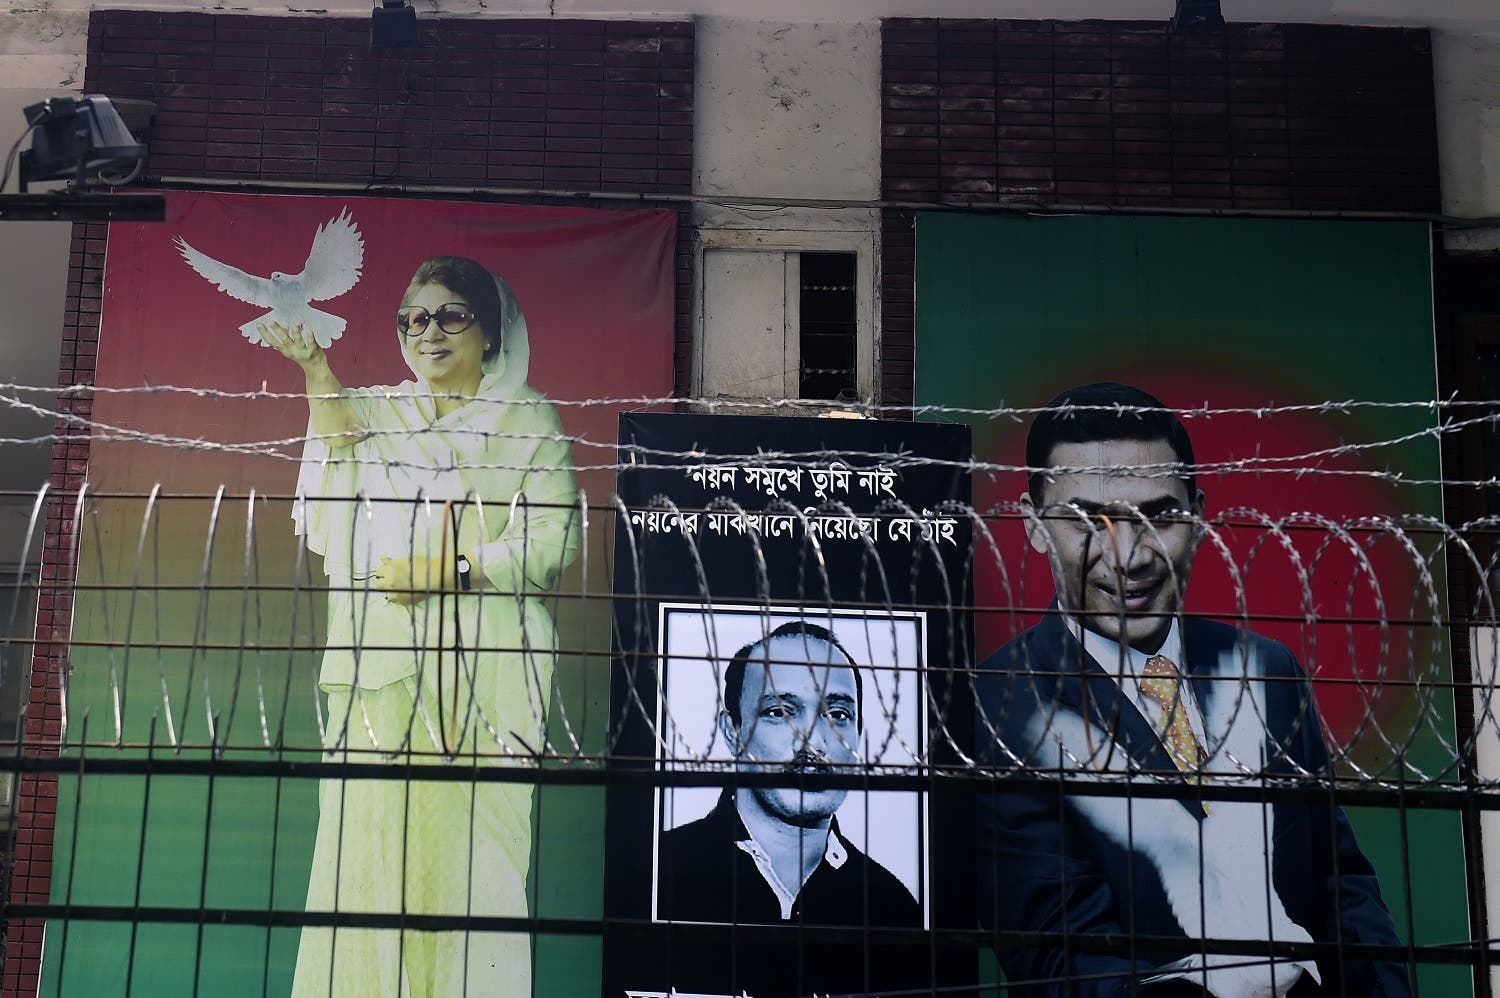 A poster of opposition Bangladesh Nationalist Party (BNP) leader, Khaleda Zia (L) is seen with her two sons late Arafat Rahman Koko (C) and Tarique Rahman (R) in front of BNP office in Dhaka on February 26, 2015. (AFP)